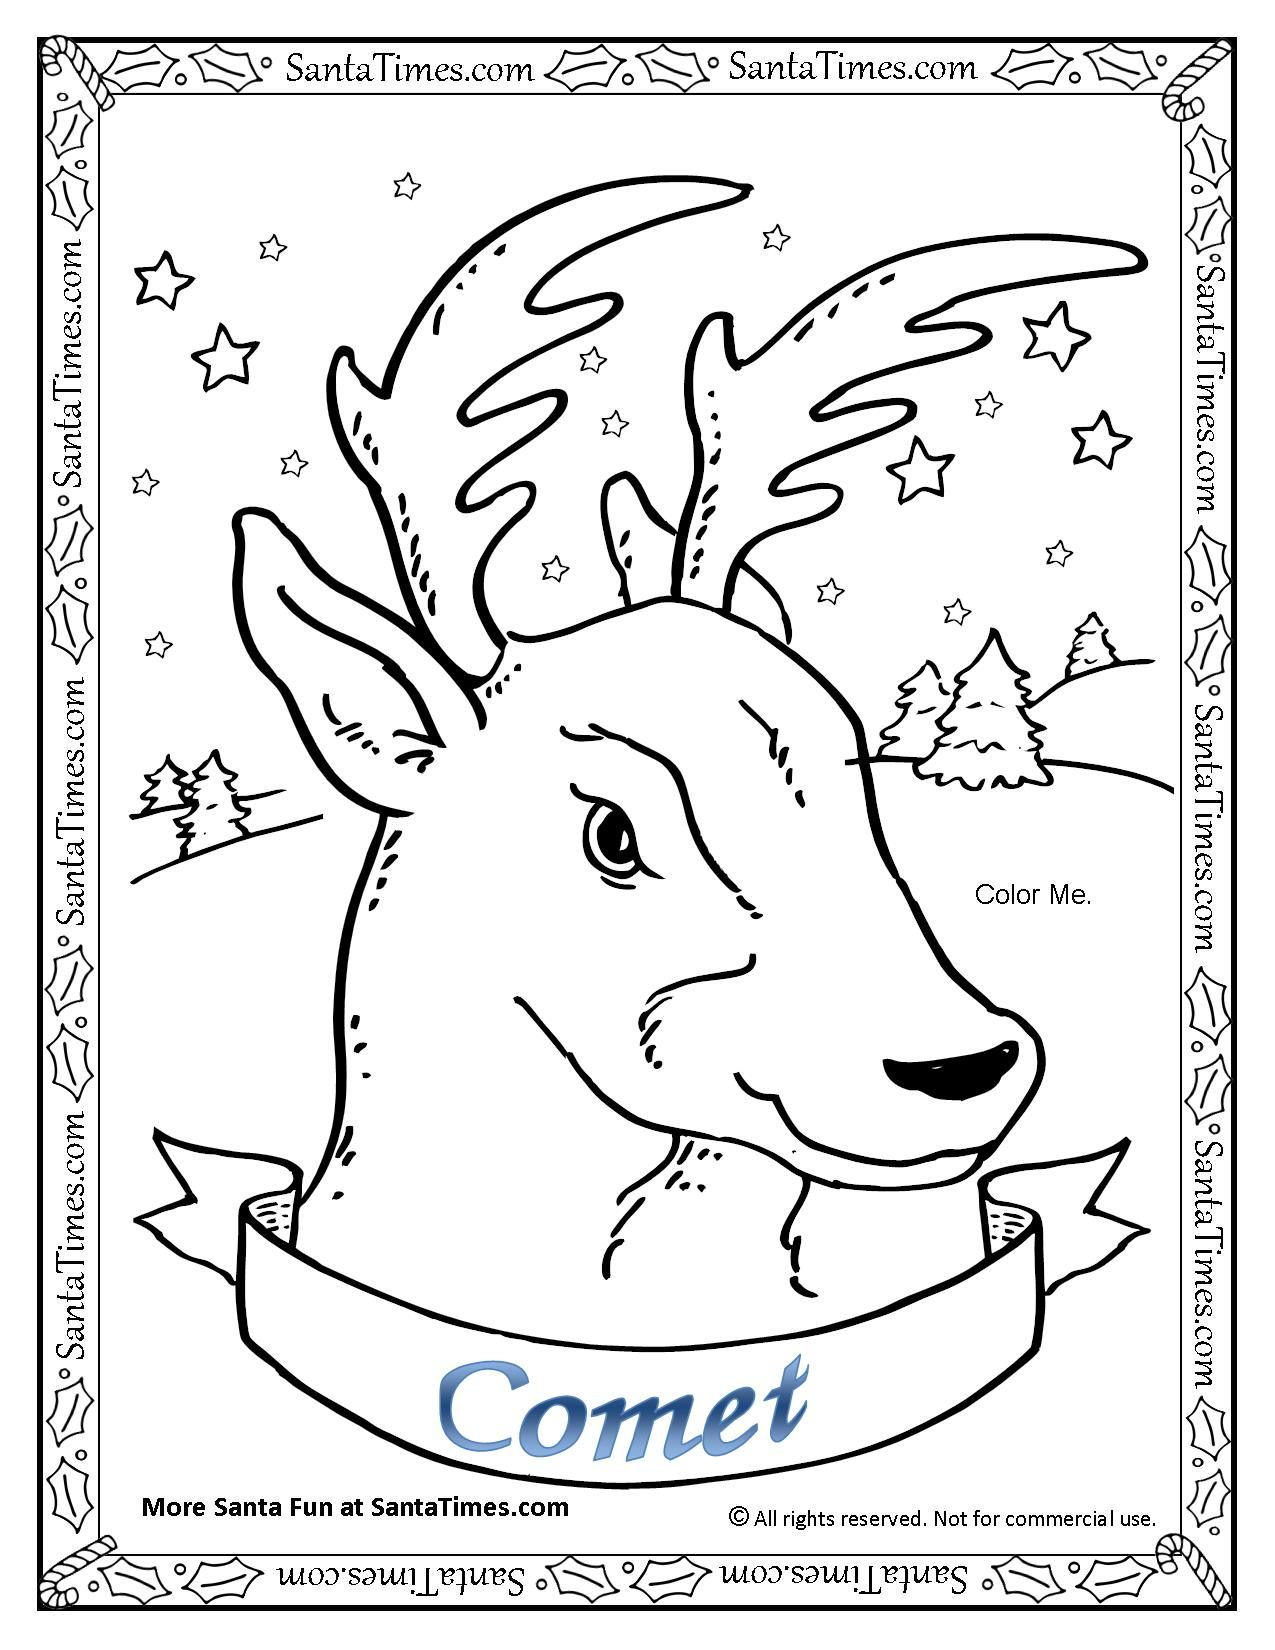 Comet the Reindeer coloring Page